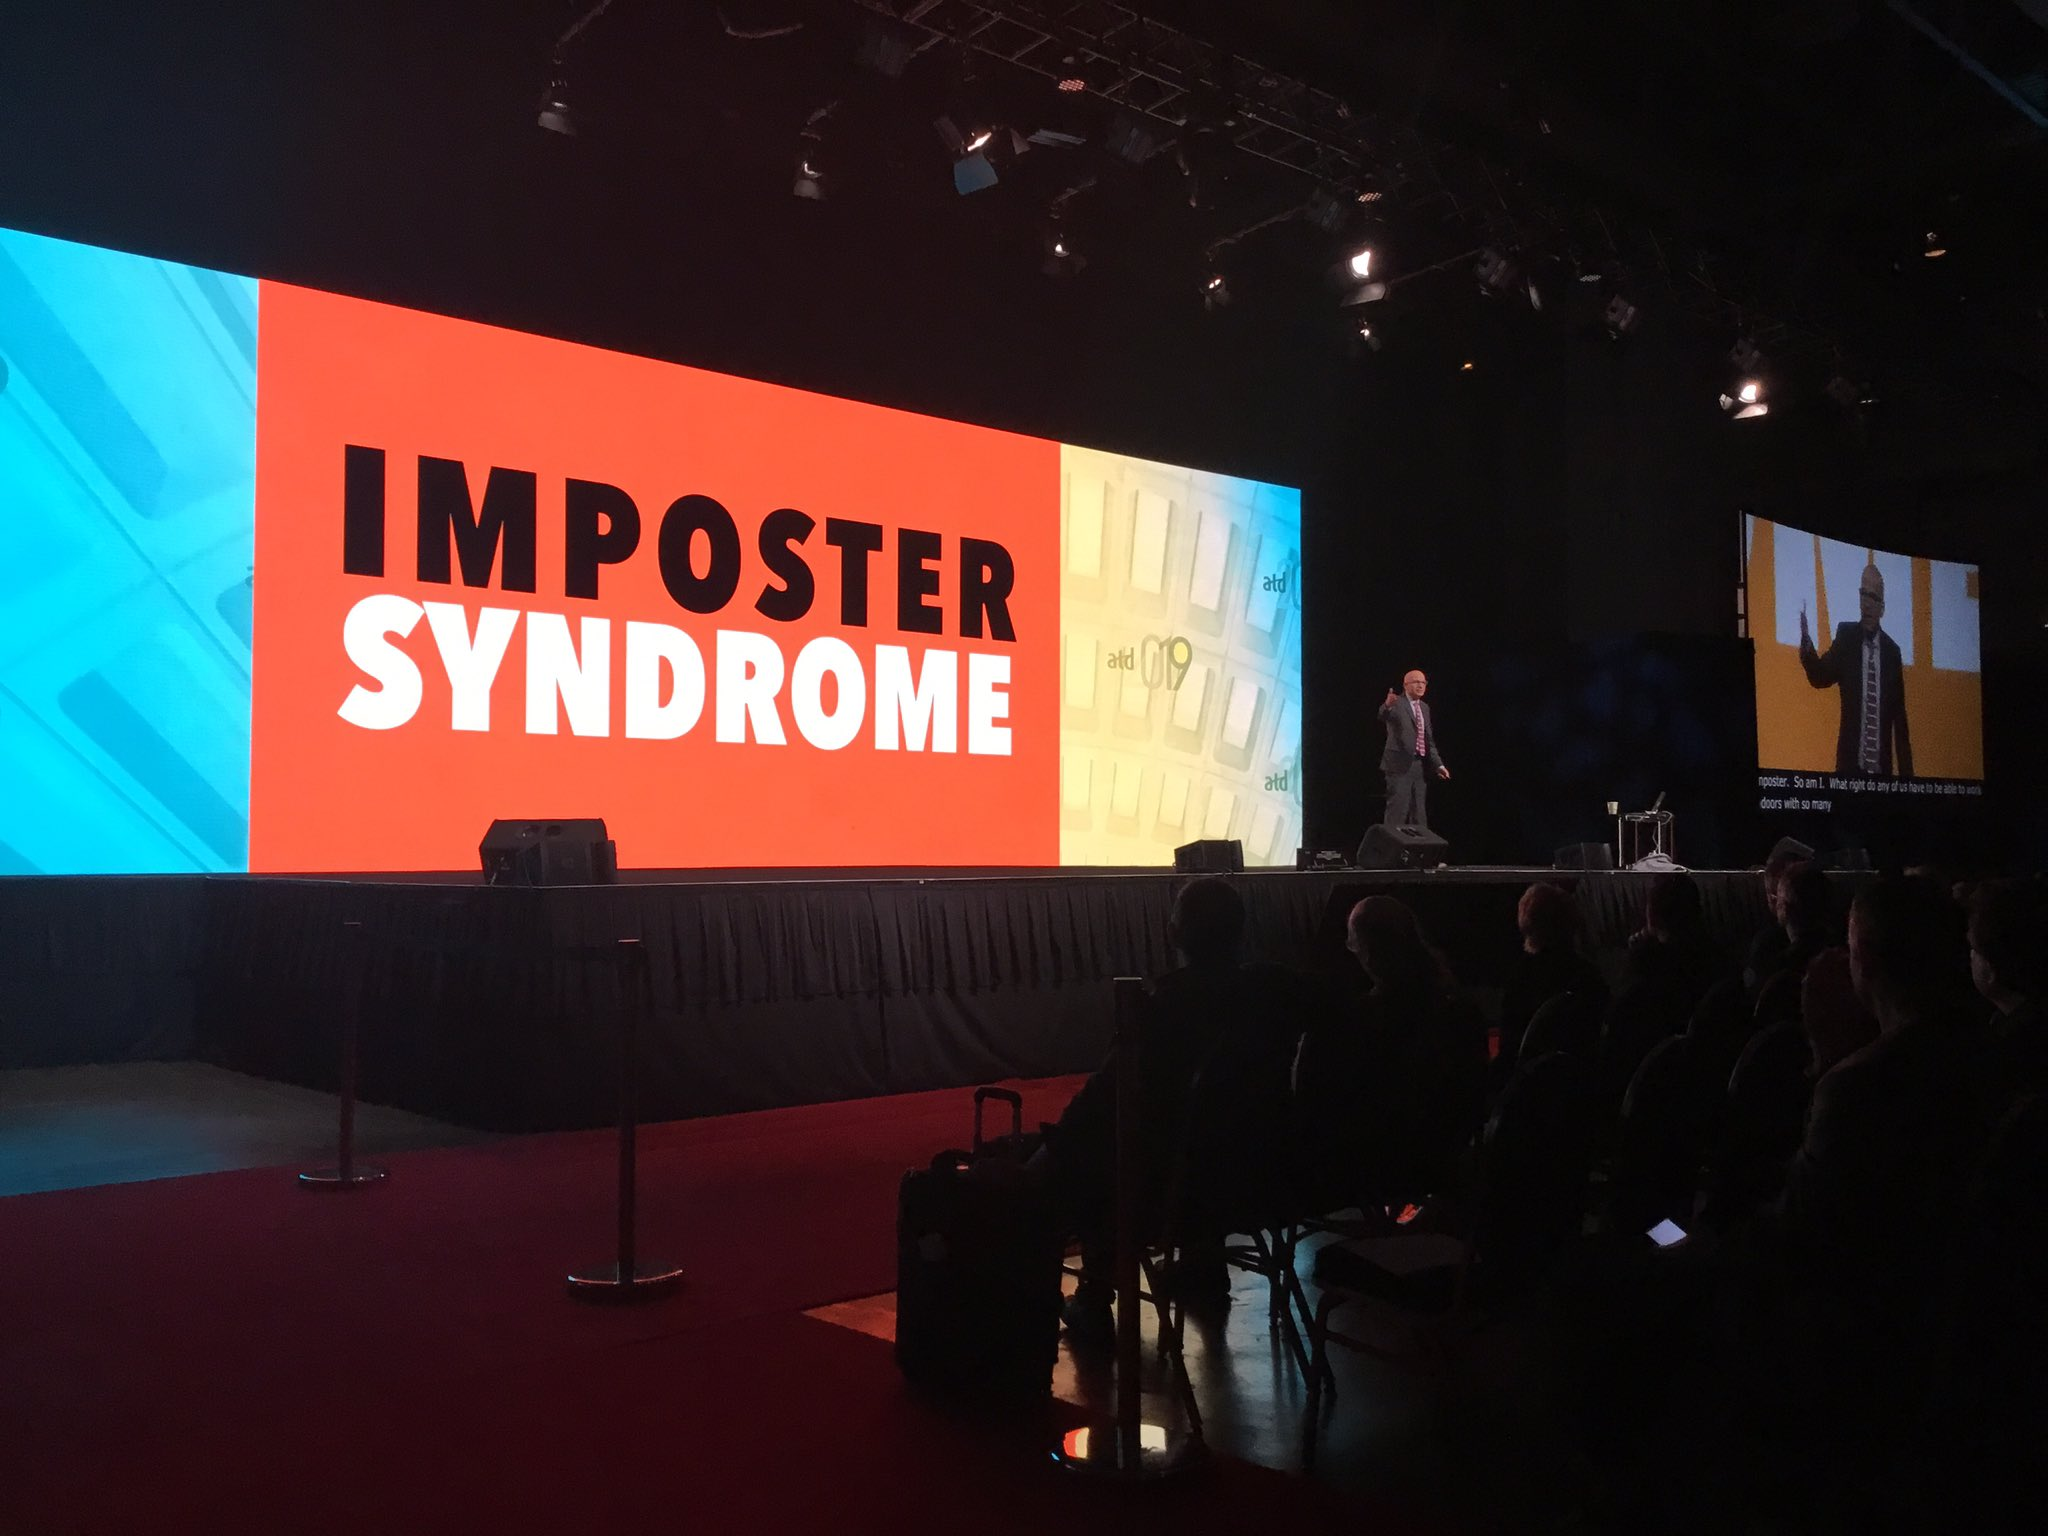 Of course you're an imposter, if you're not an imposter you're a psychopath. -@ThisIsSethsBlog   #ATD2019 https://t.co/IbG0KBeUD8